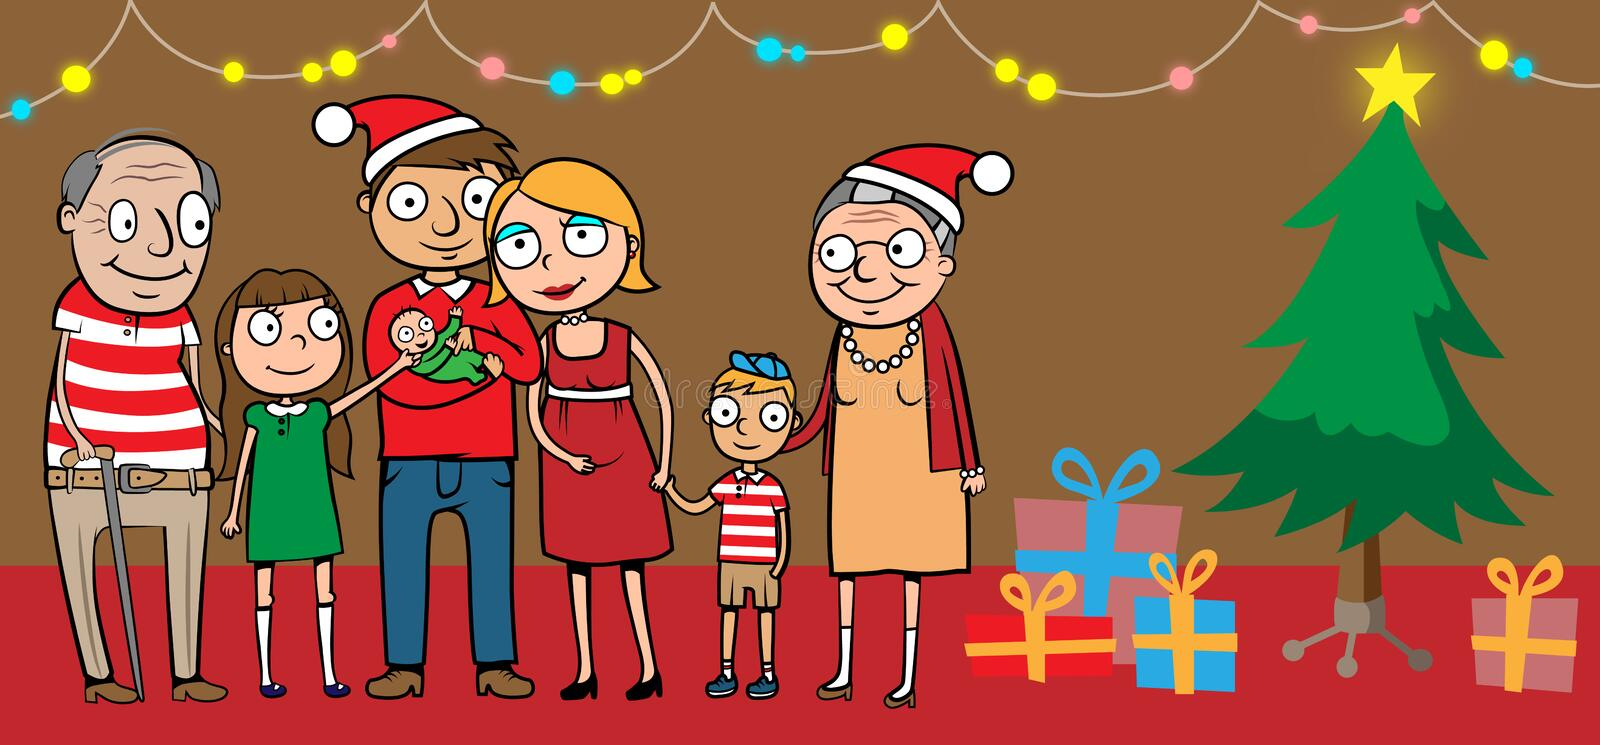 Big happy family by christmas tree. Cartoon vector illustration of big happy family celebrating at home by christmas tree with presents stock illustration